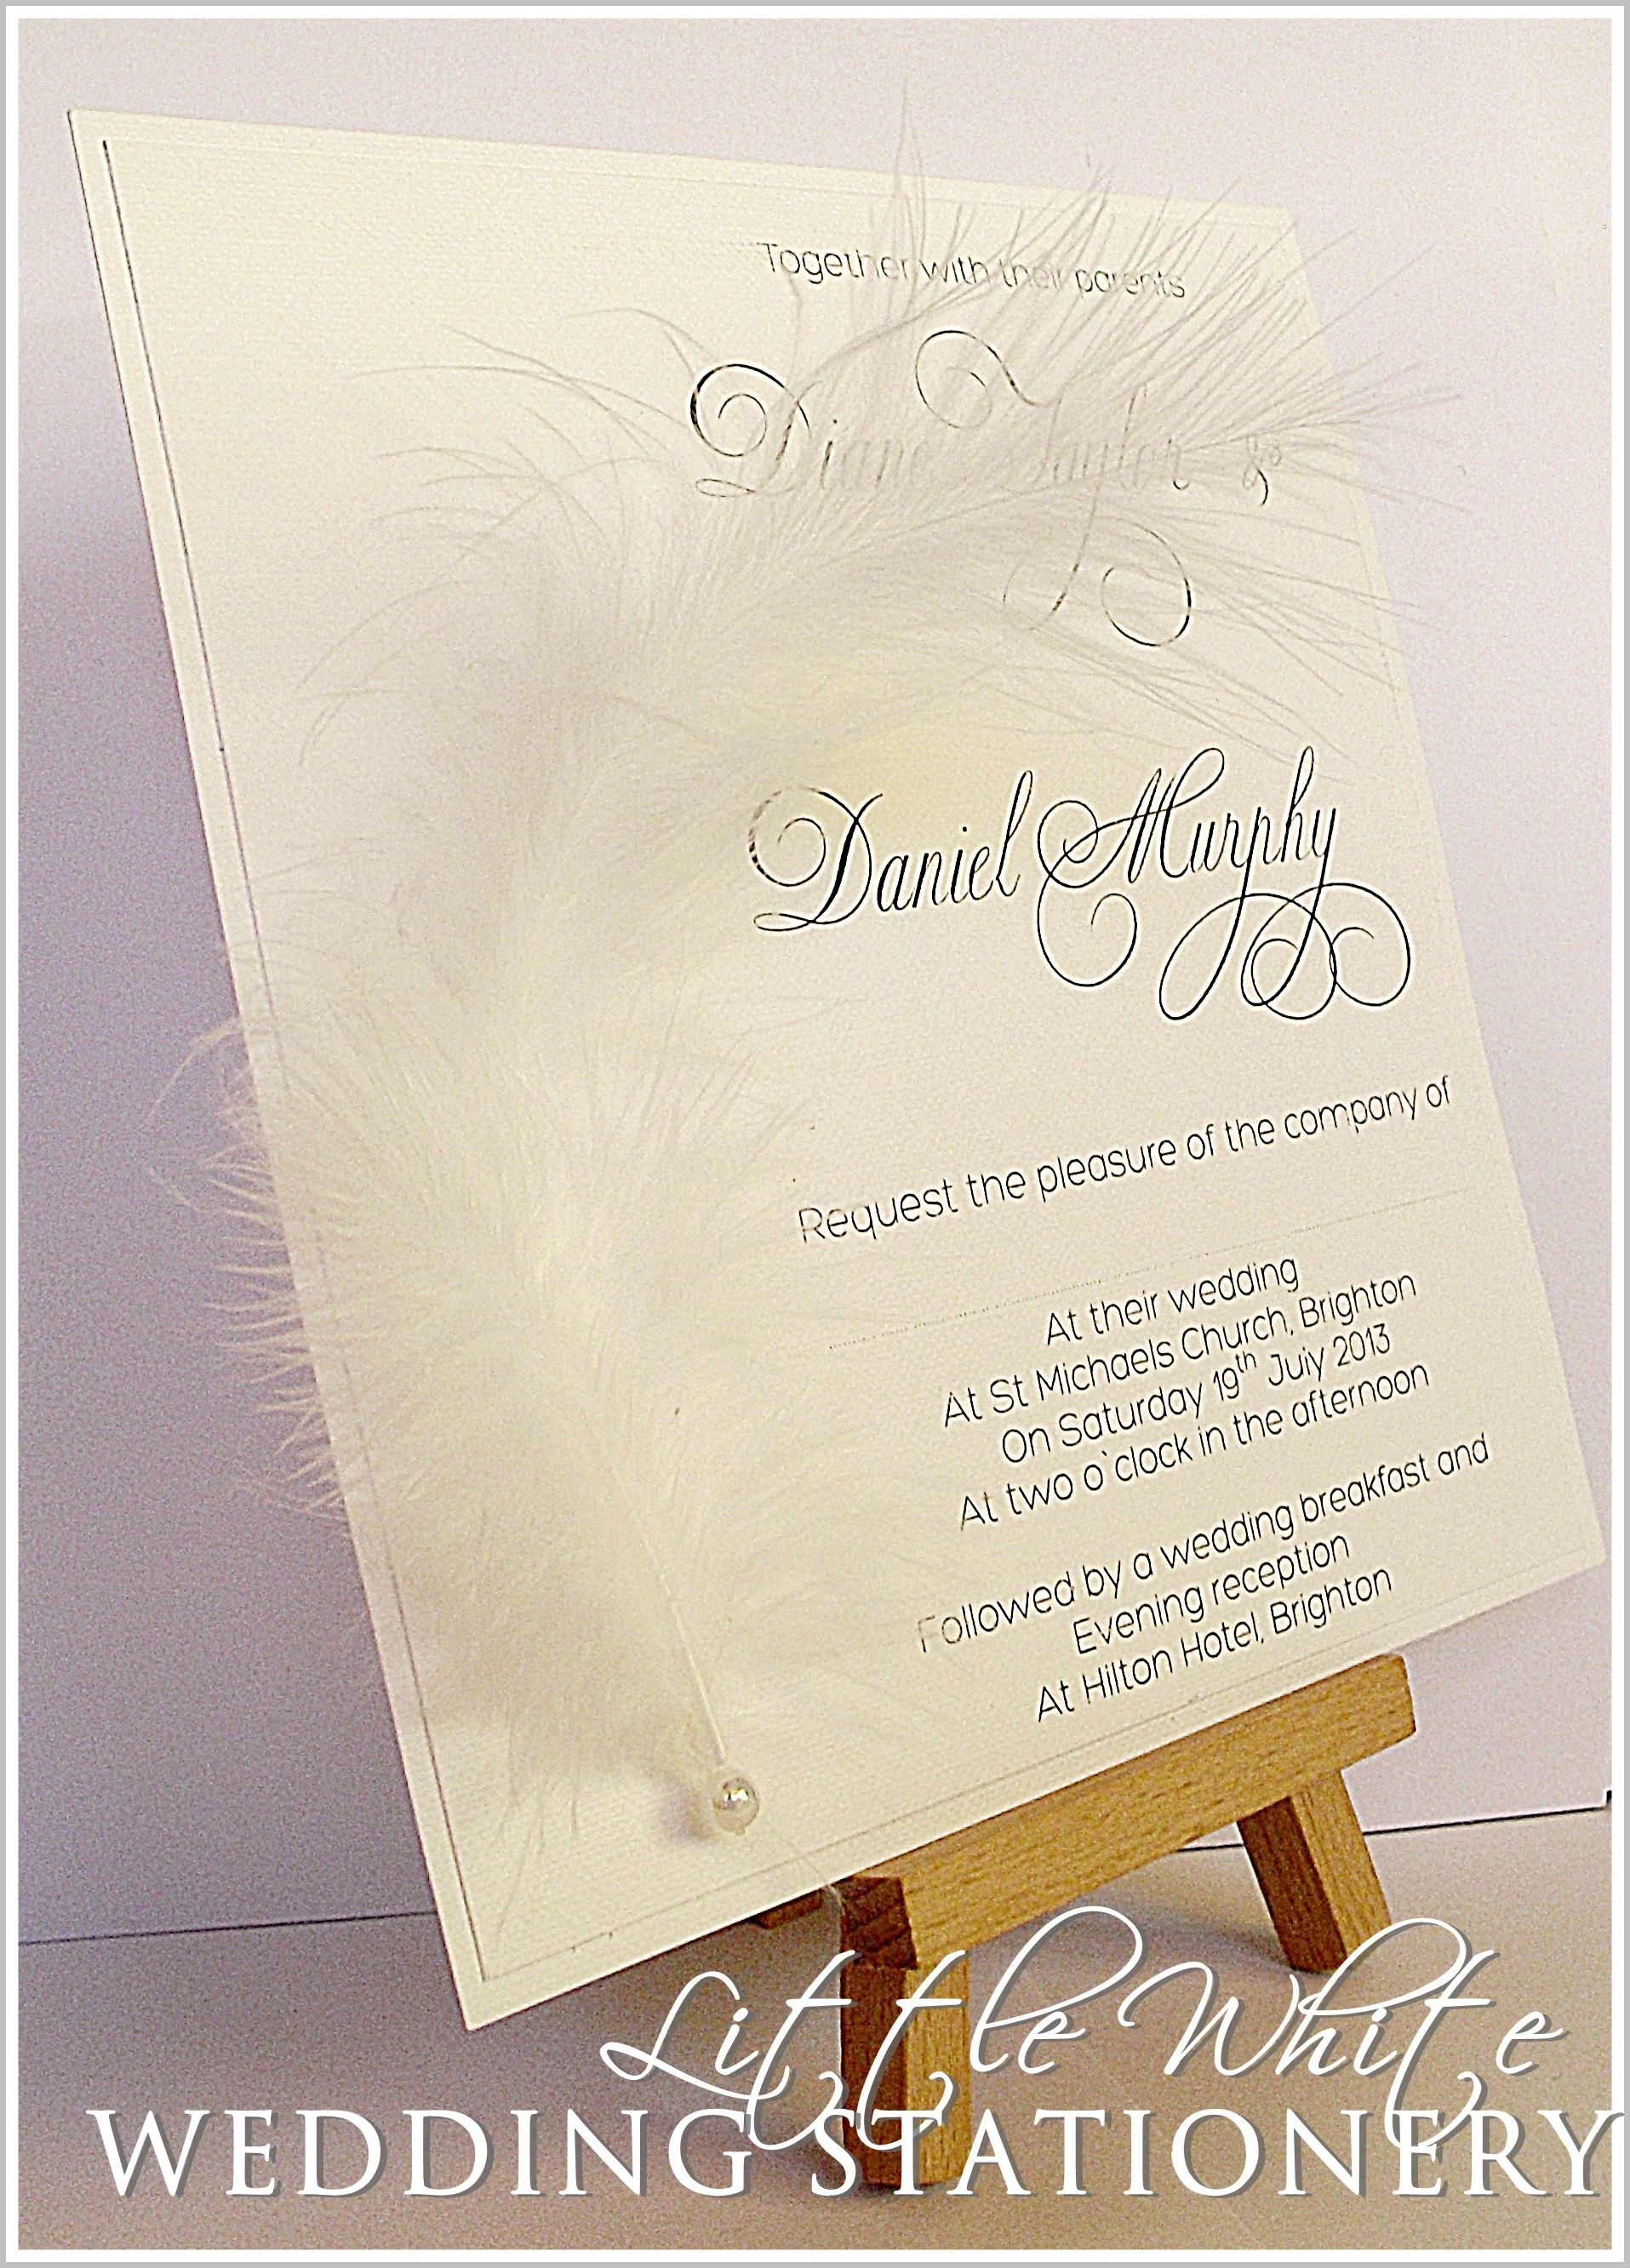 Marabou Feather Wedding Invitations & Stationery pop over my ...